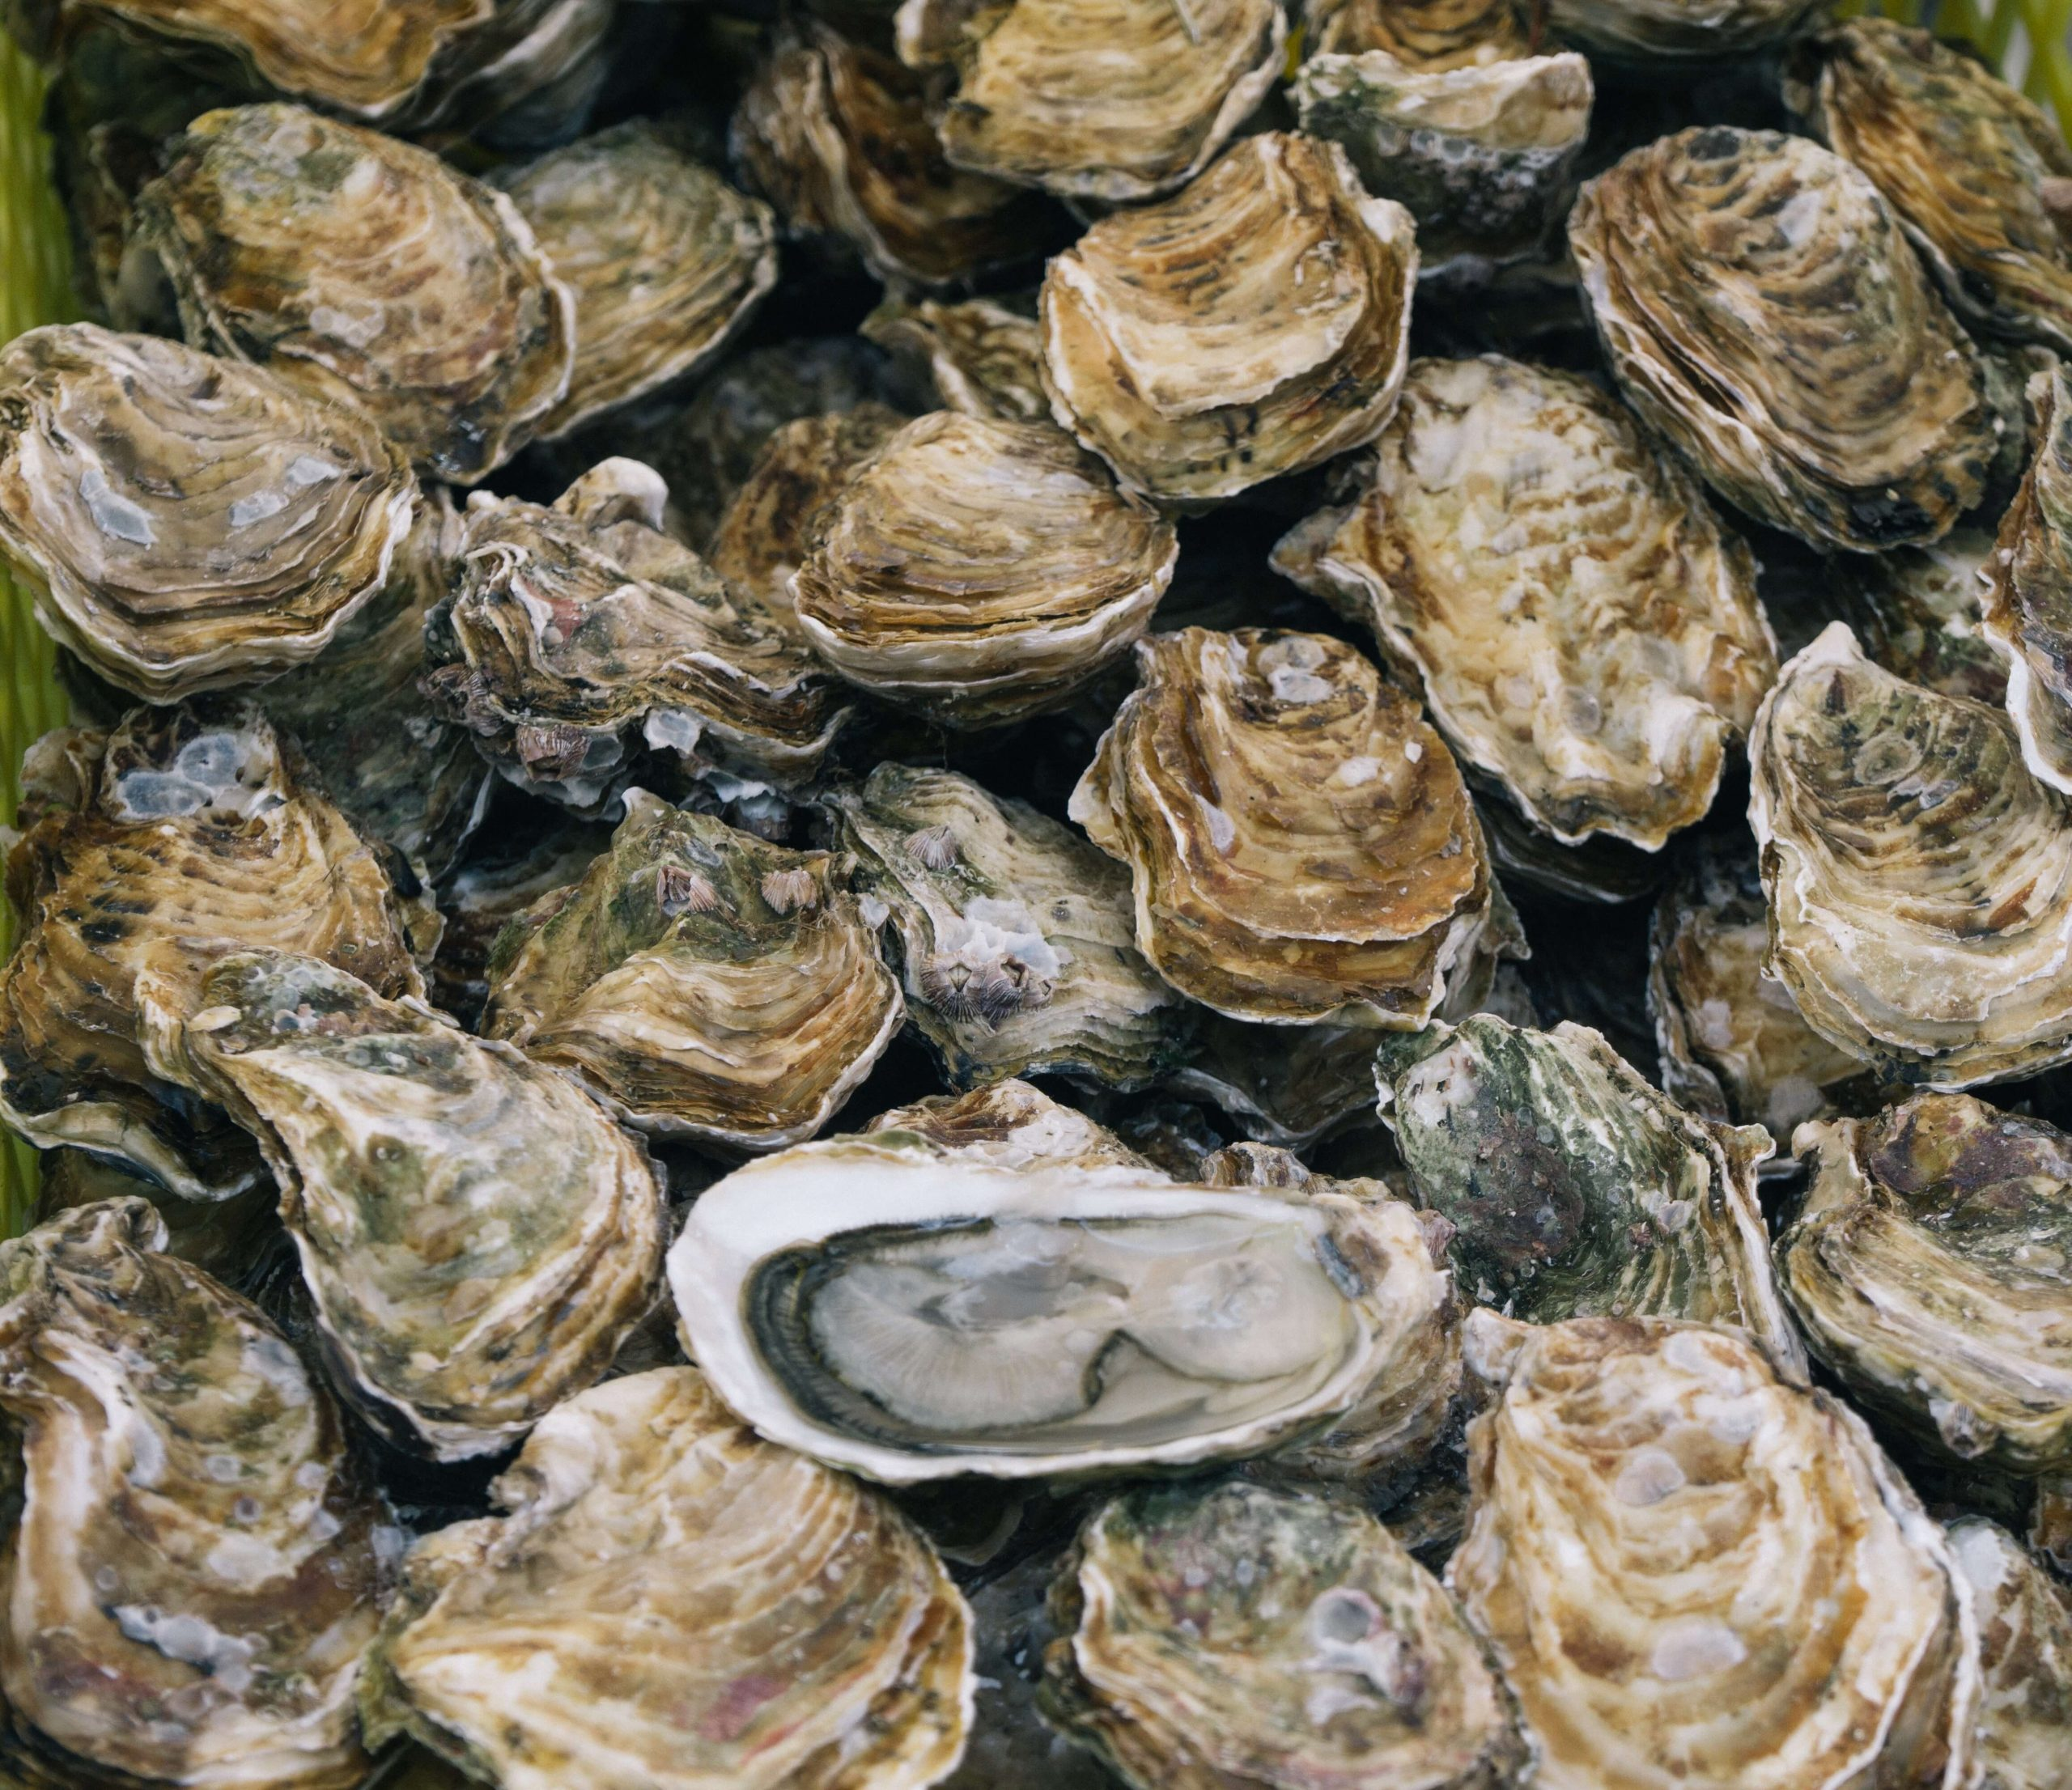 Types of oysters